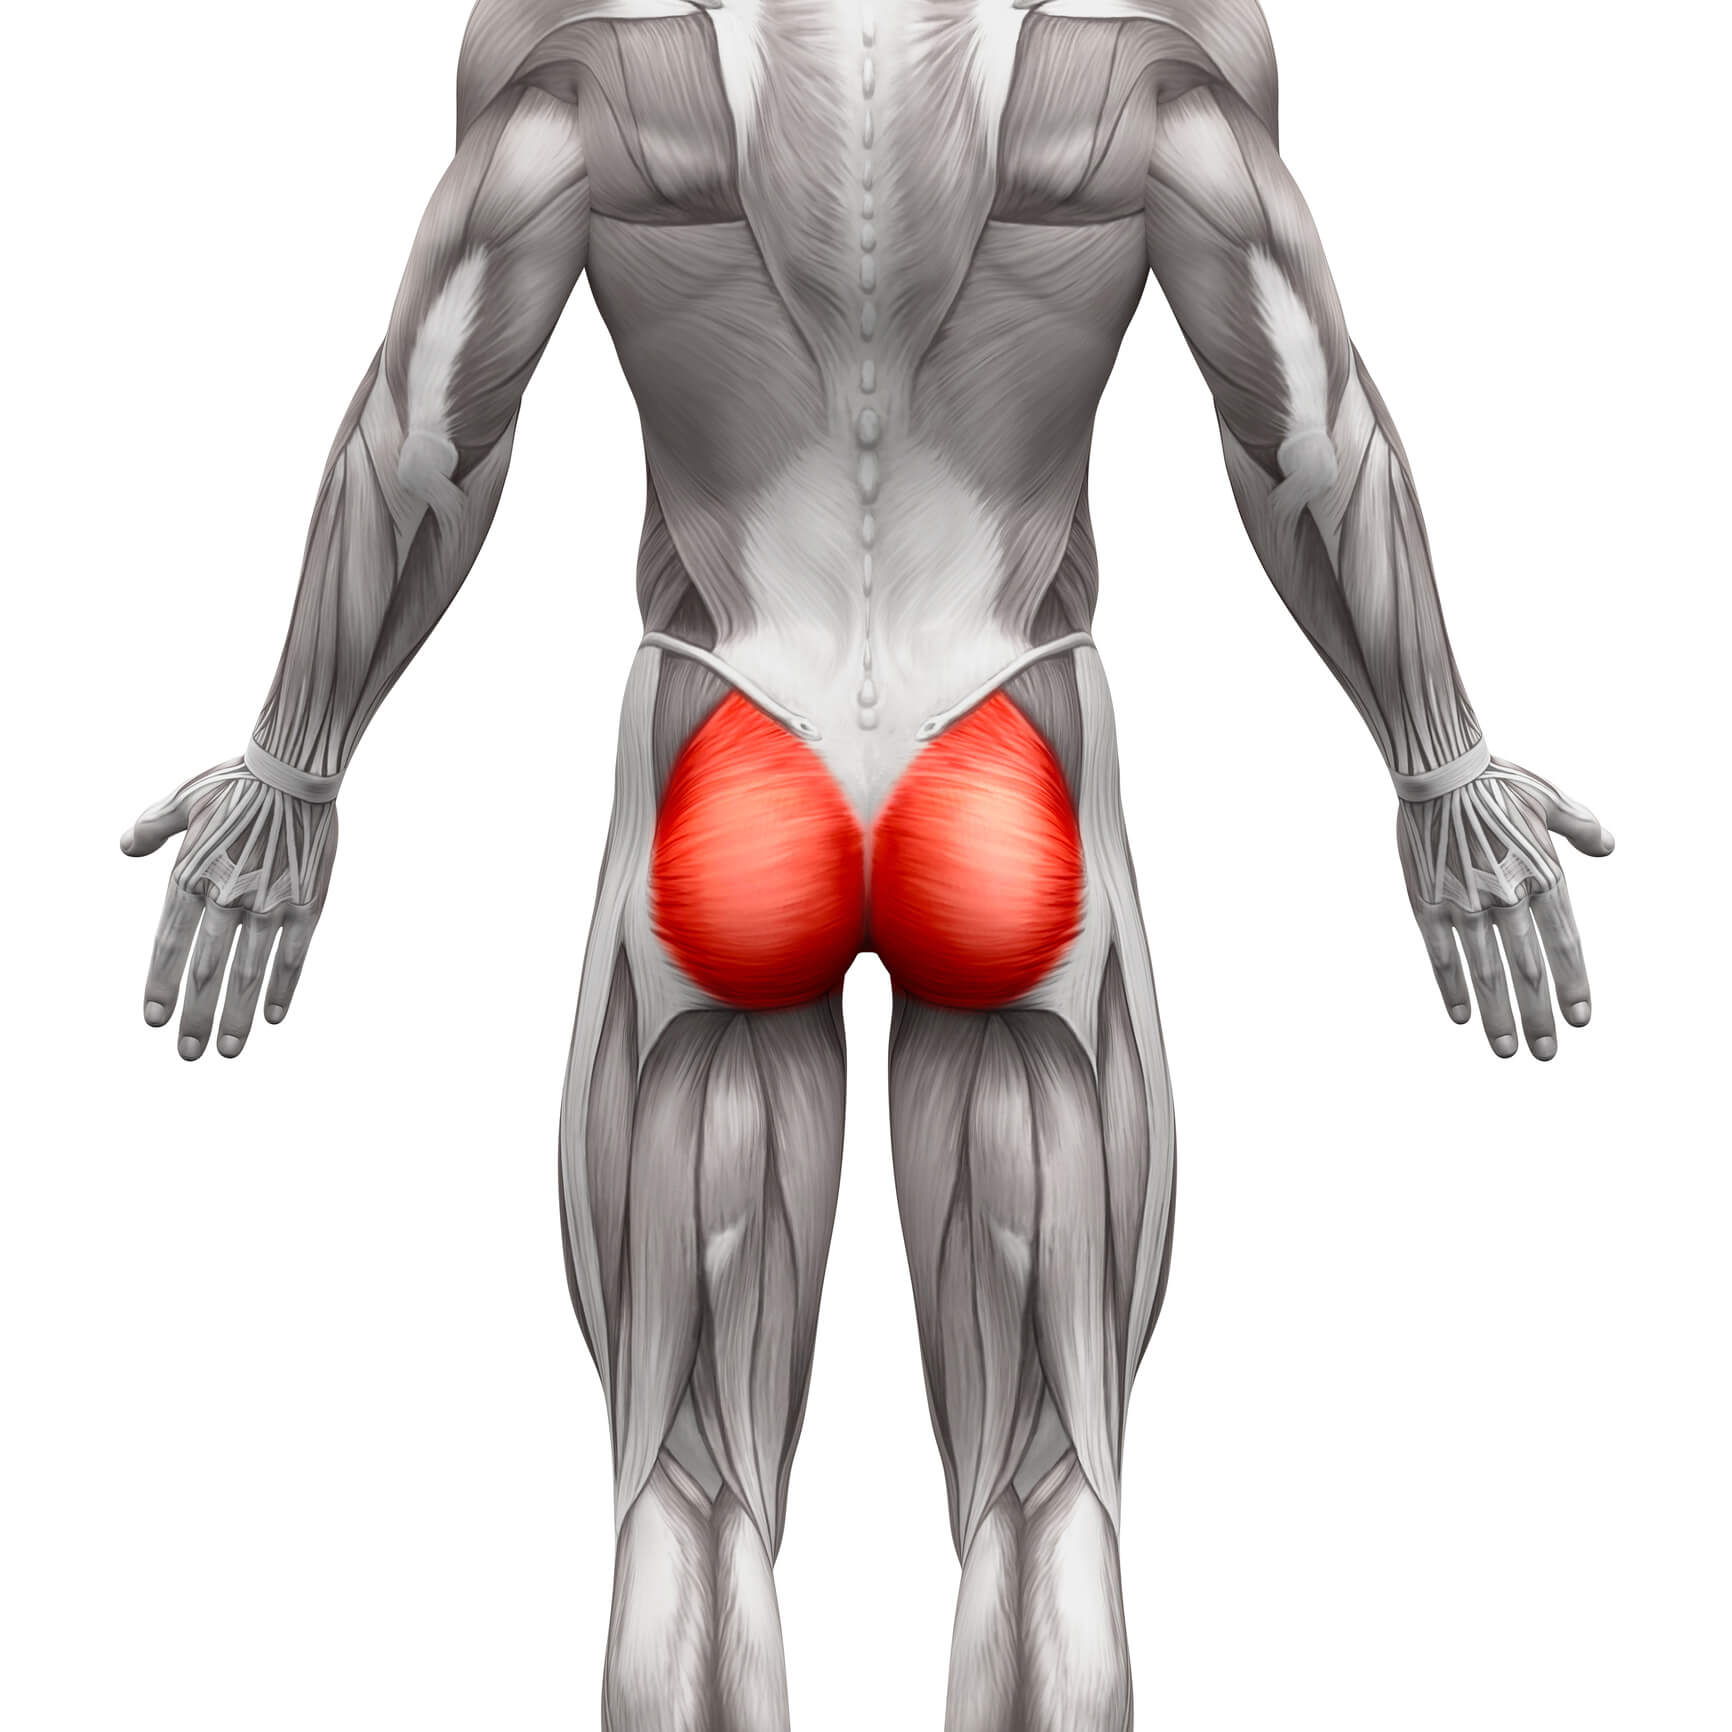 Anatomic picture of glutes.